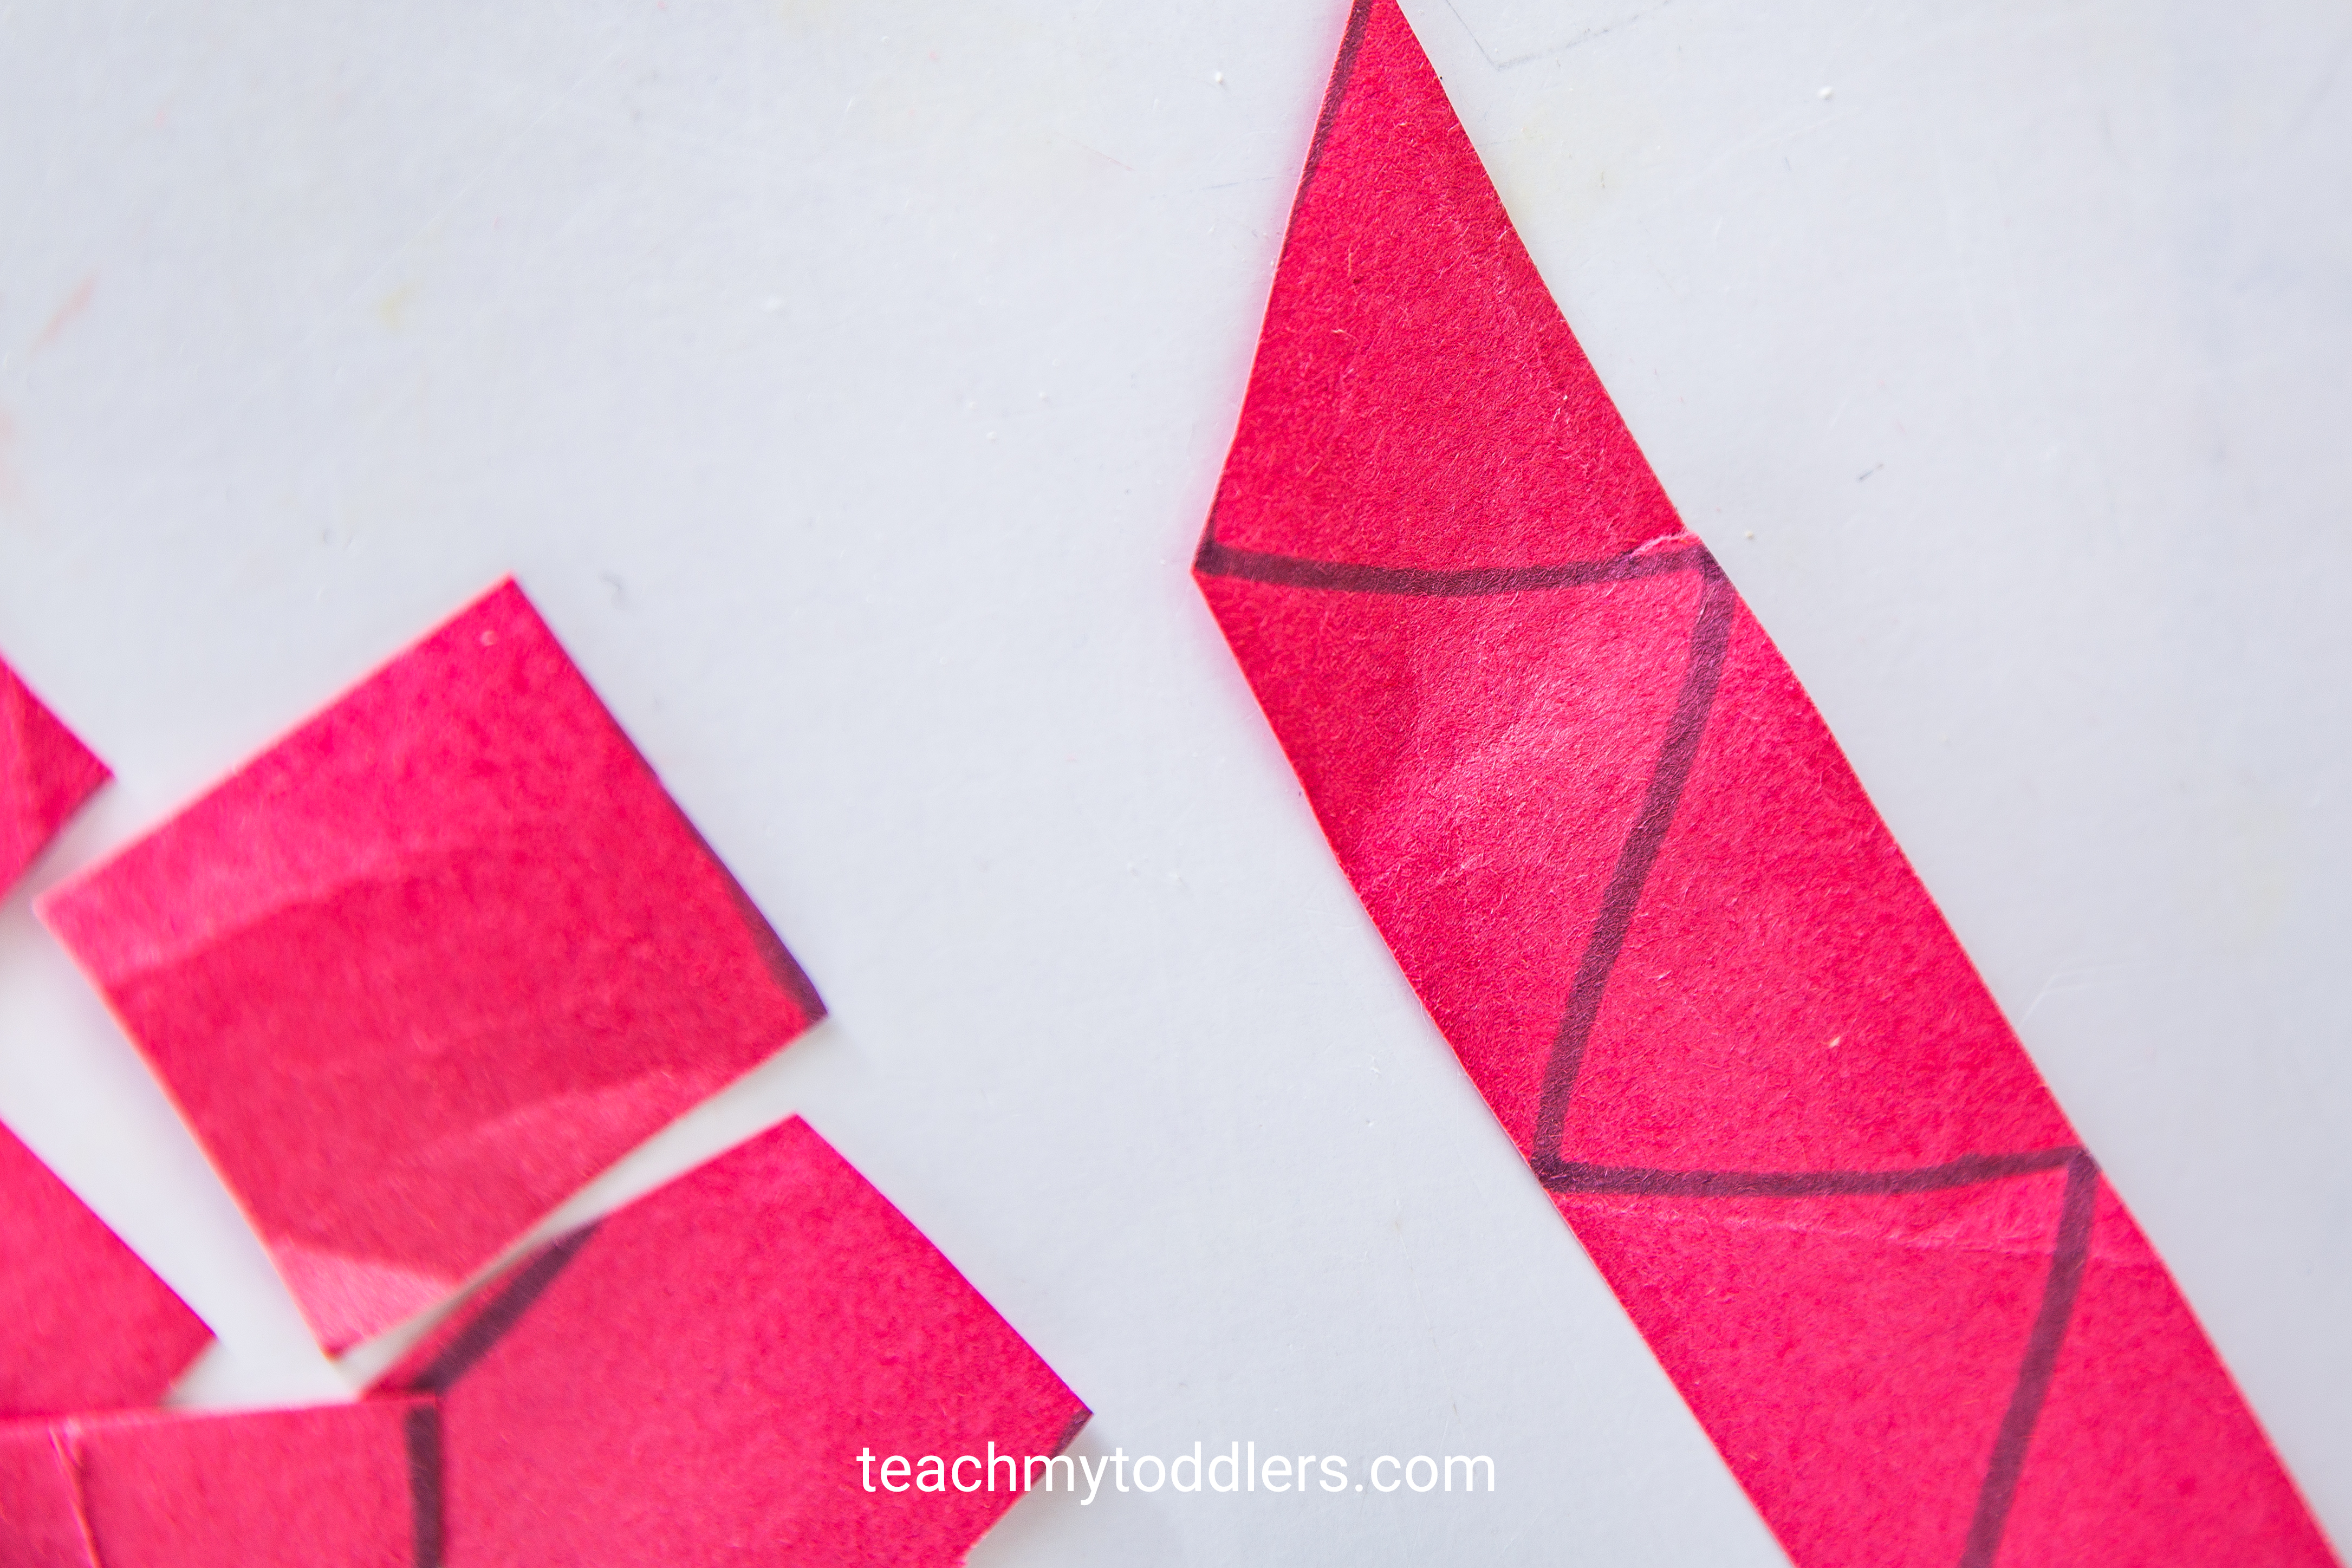 Learn how to use this cutting practice to teach toddlers shapes